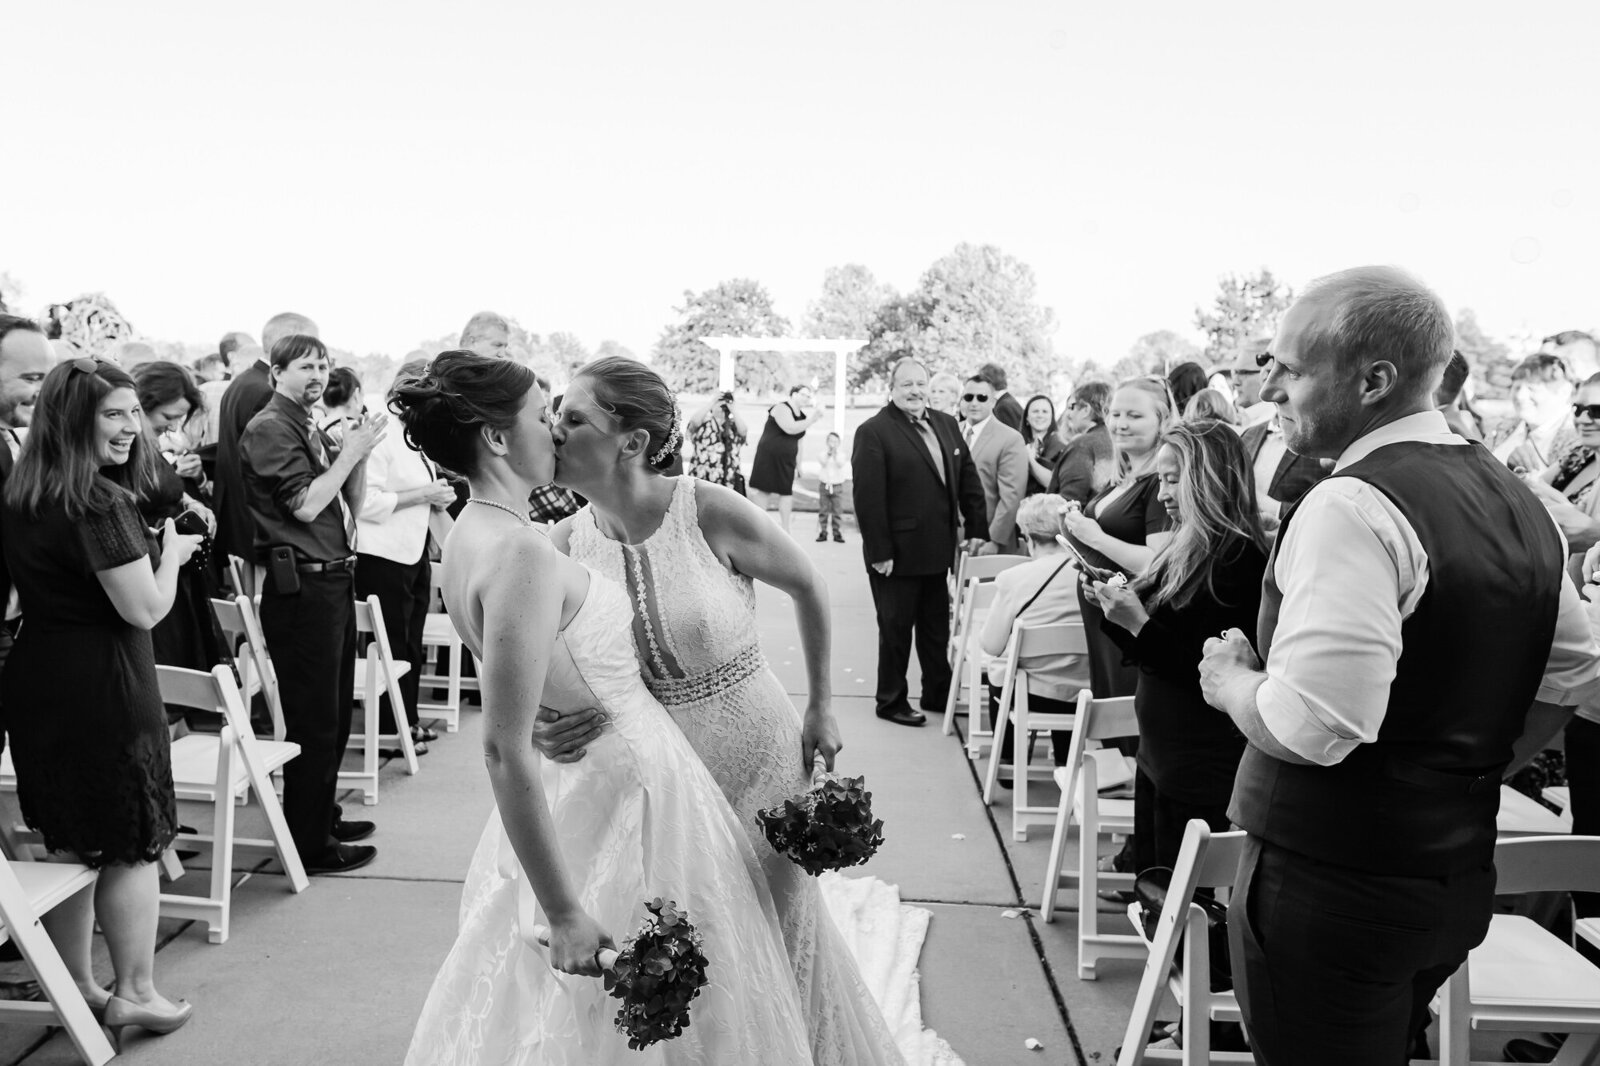 Two brides kiss after walking down the aisle after their Forest Park wedding ceremony in St. Louis